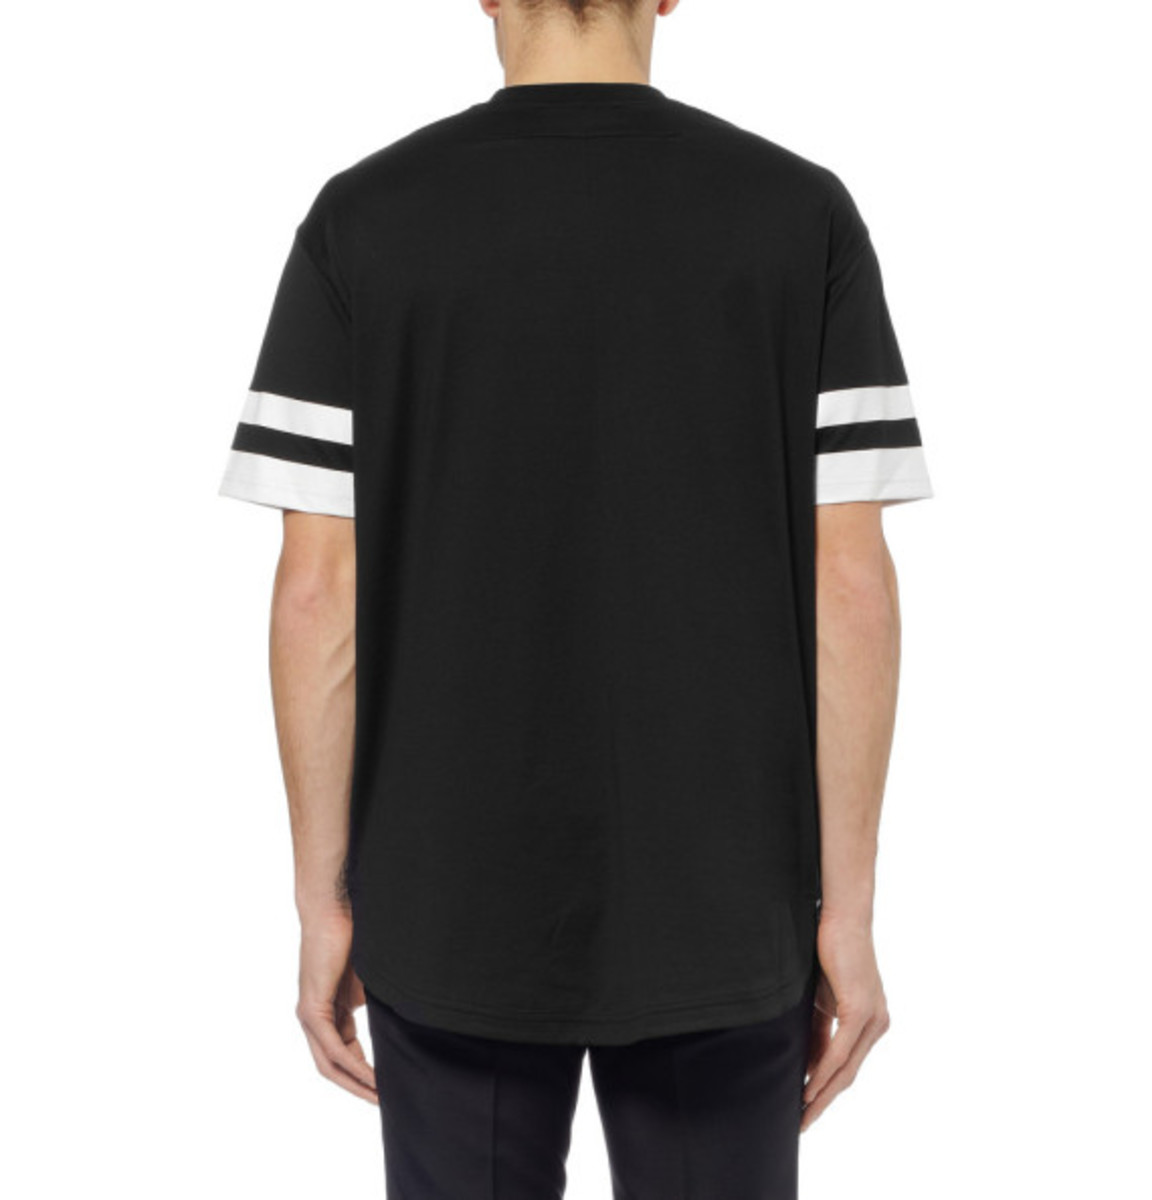 givenchy-columbian-fit-short-sleeve-printed-tee-06